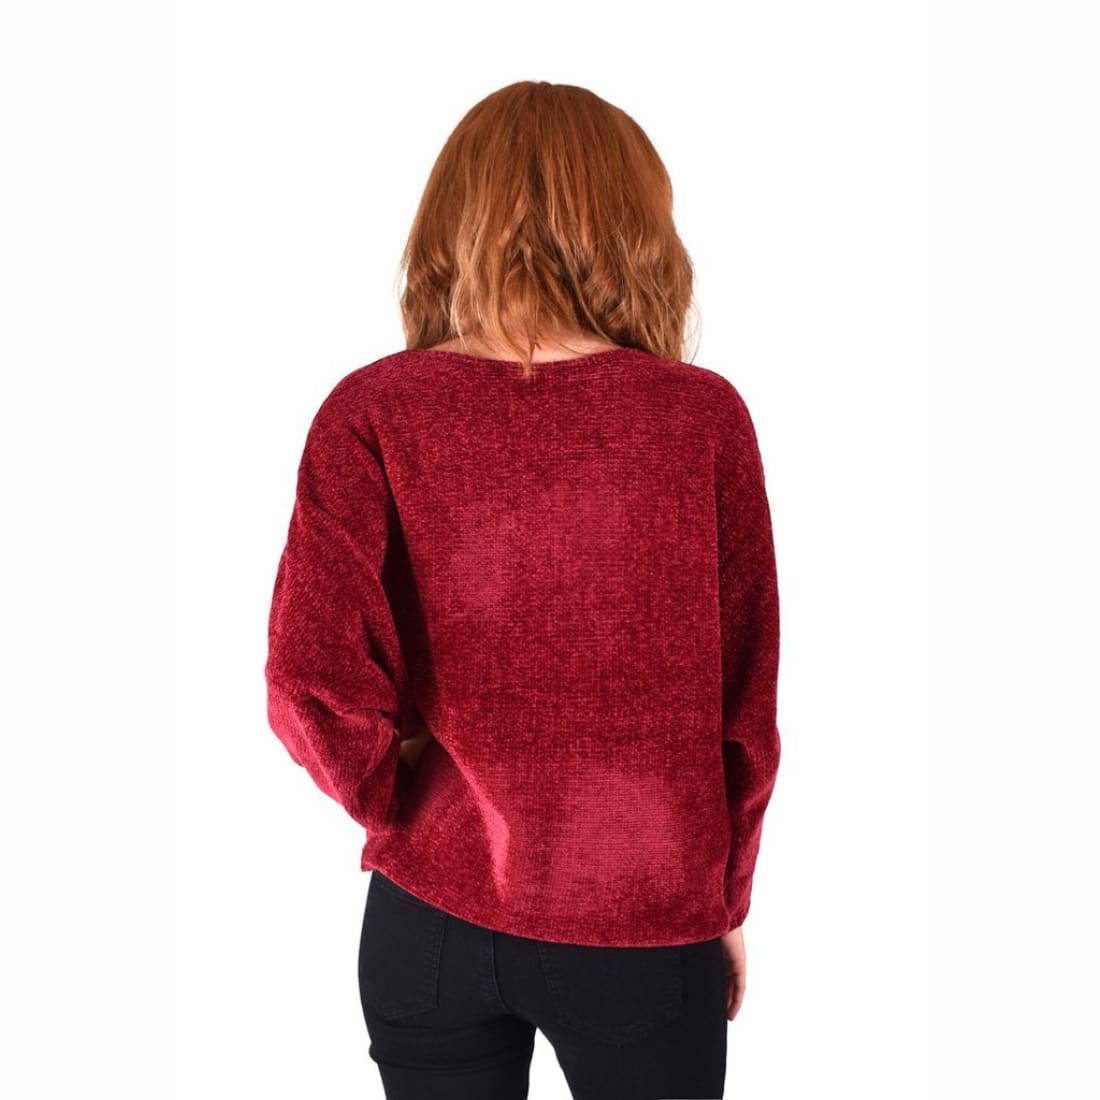 Ethyl Womens The Amari-Garland Chenille Boat Neck Sweater Sweaters